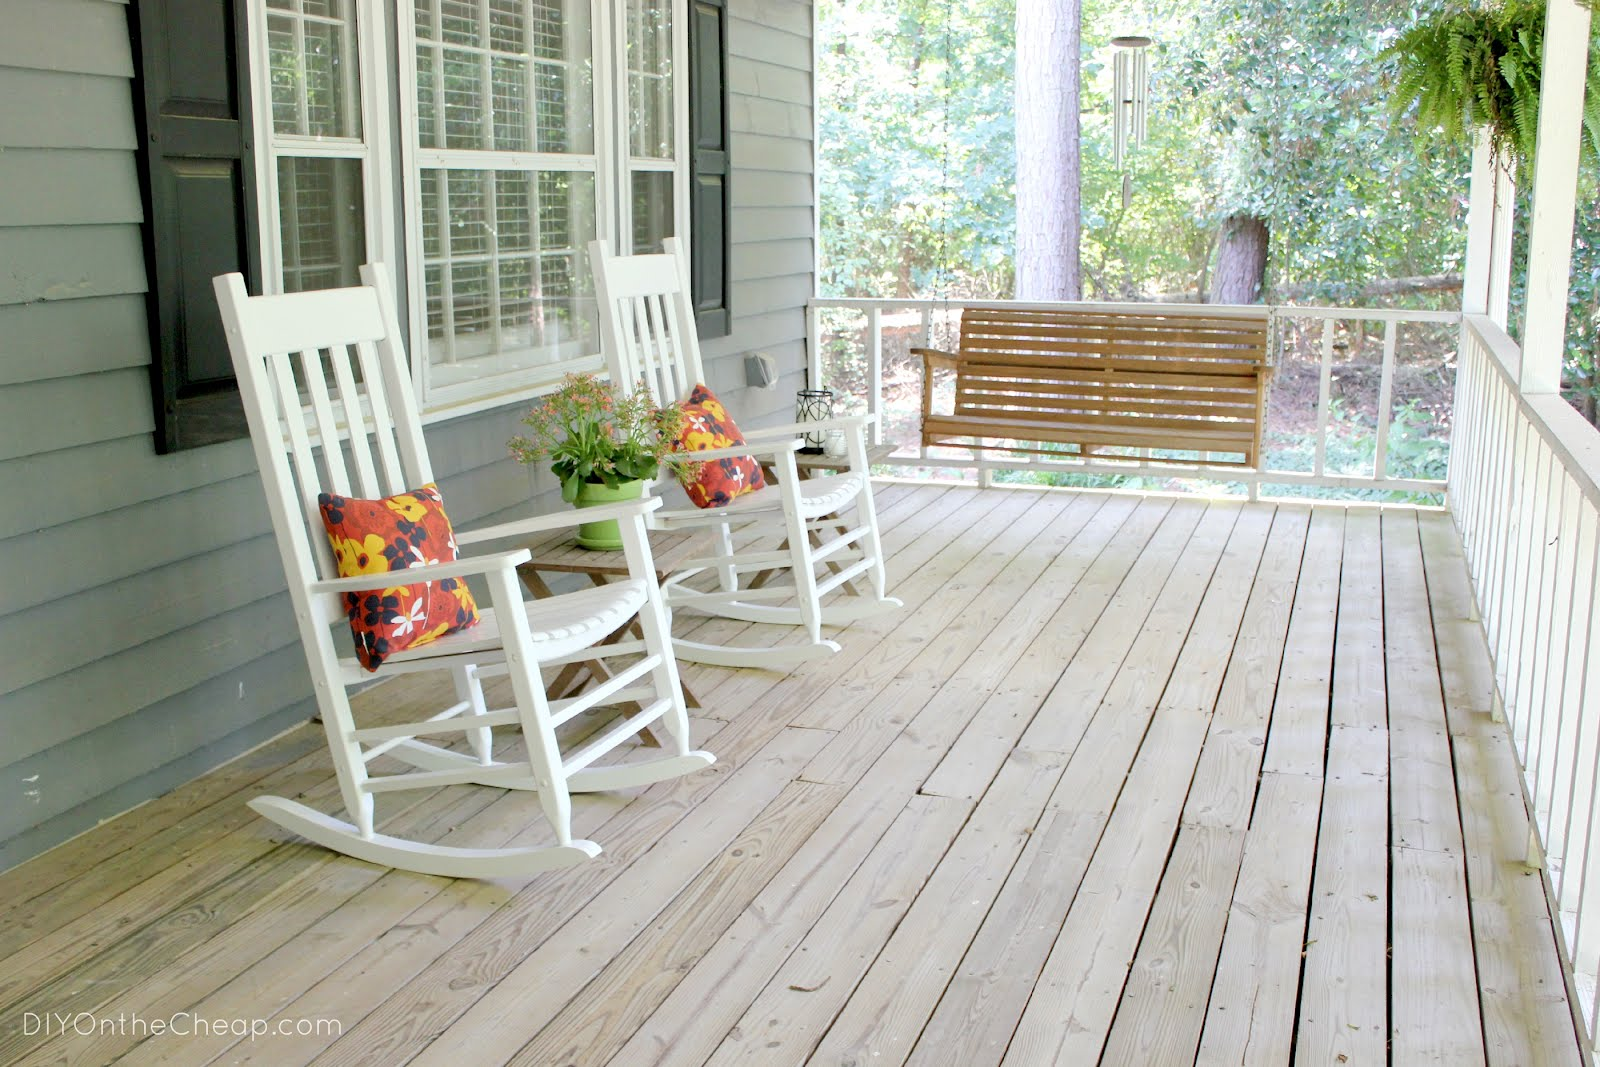 Diy on the cheap welcome to our home part 1 for Chairs for front porch